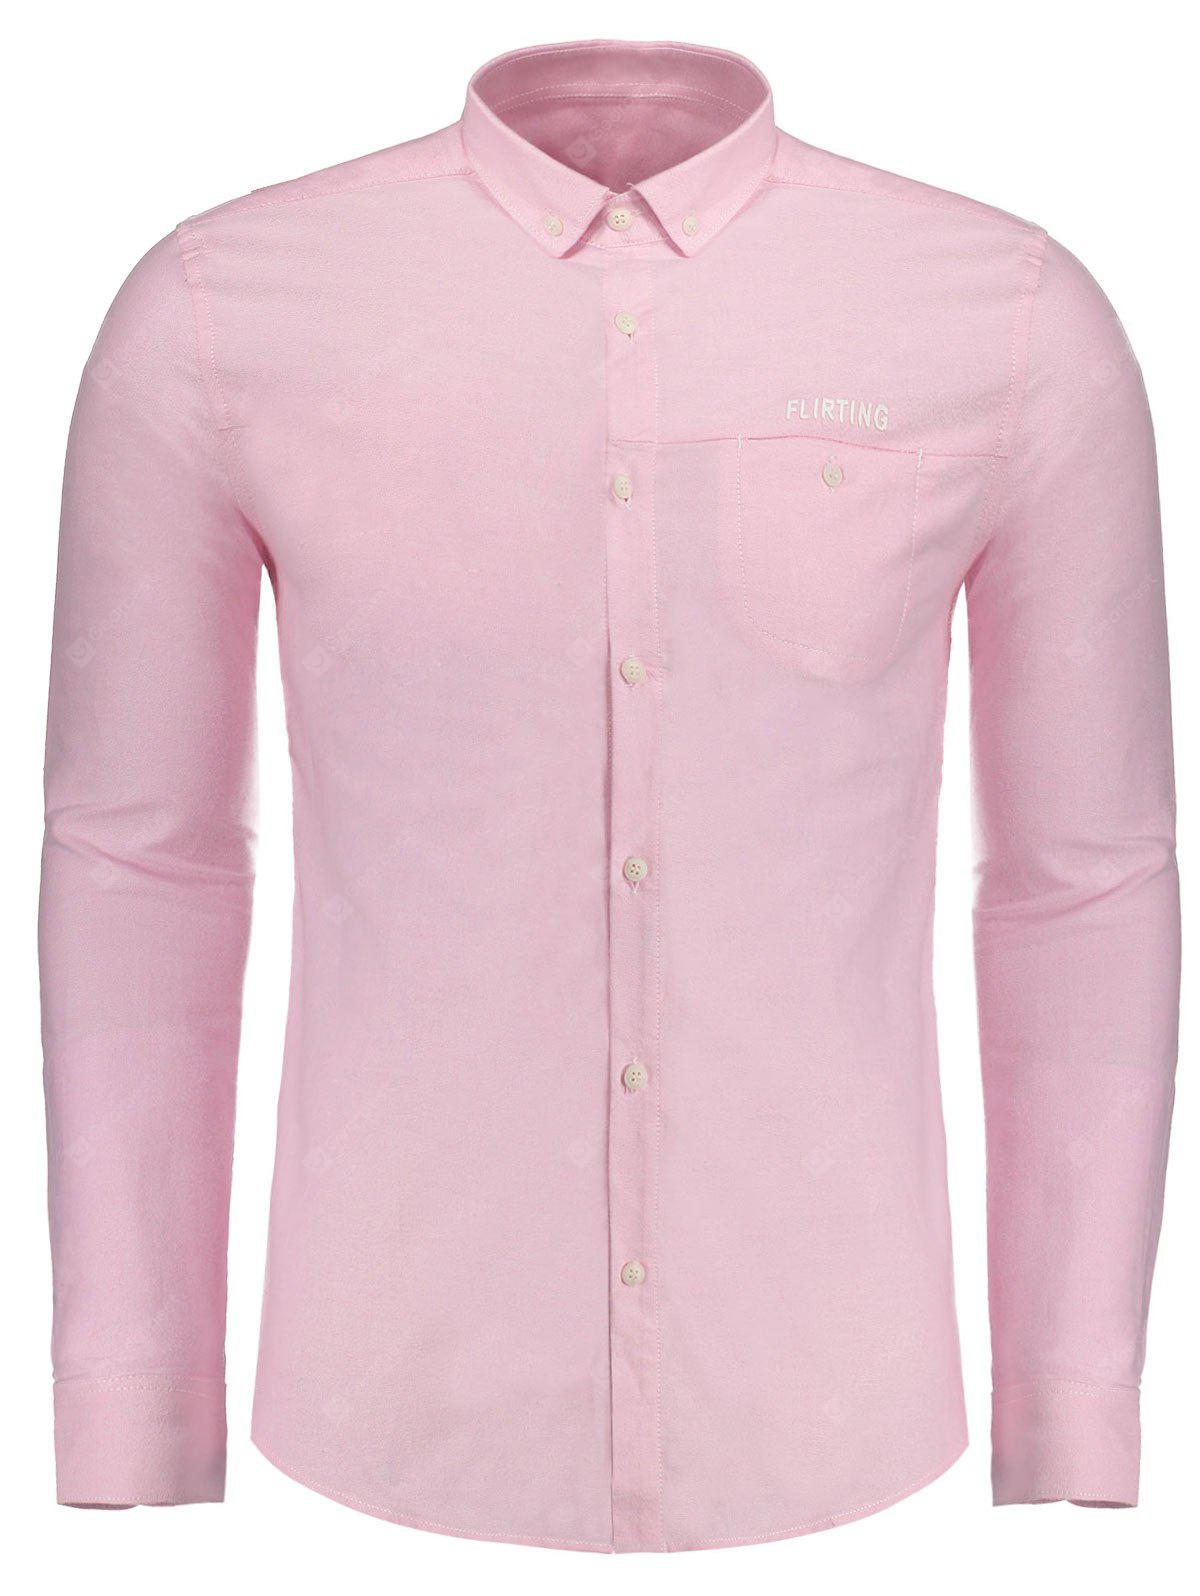 Flirting Graphic Button Down Hombre Camisa